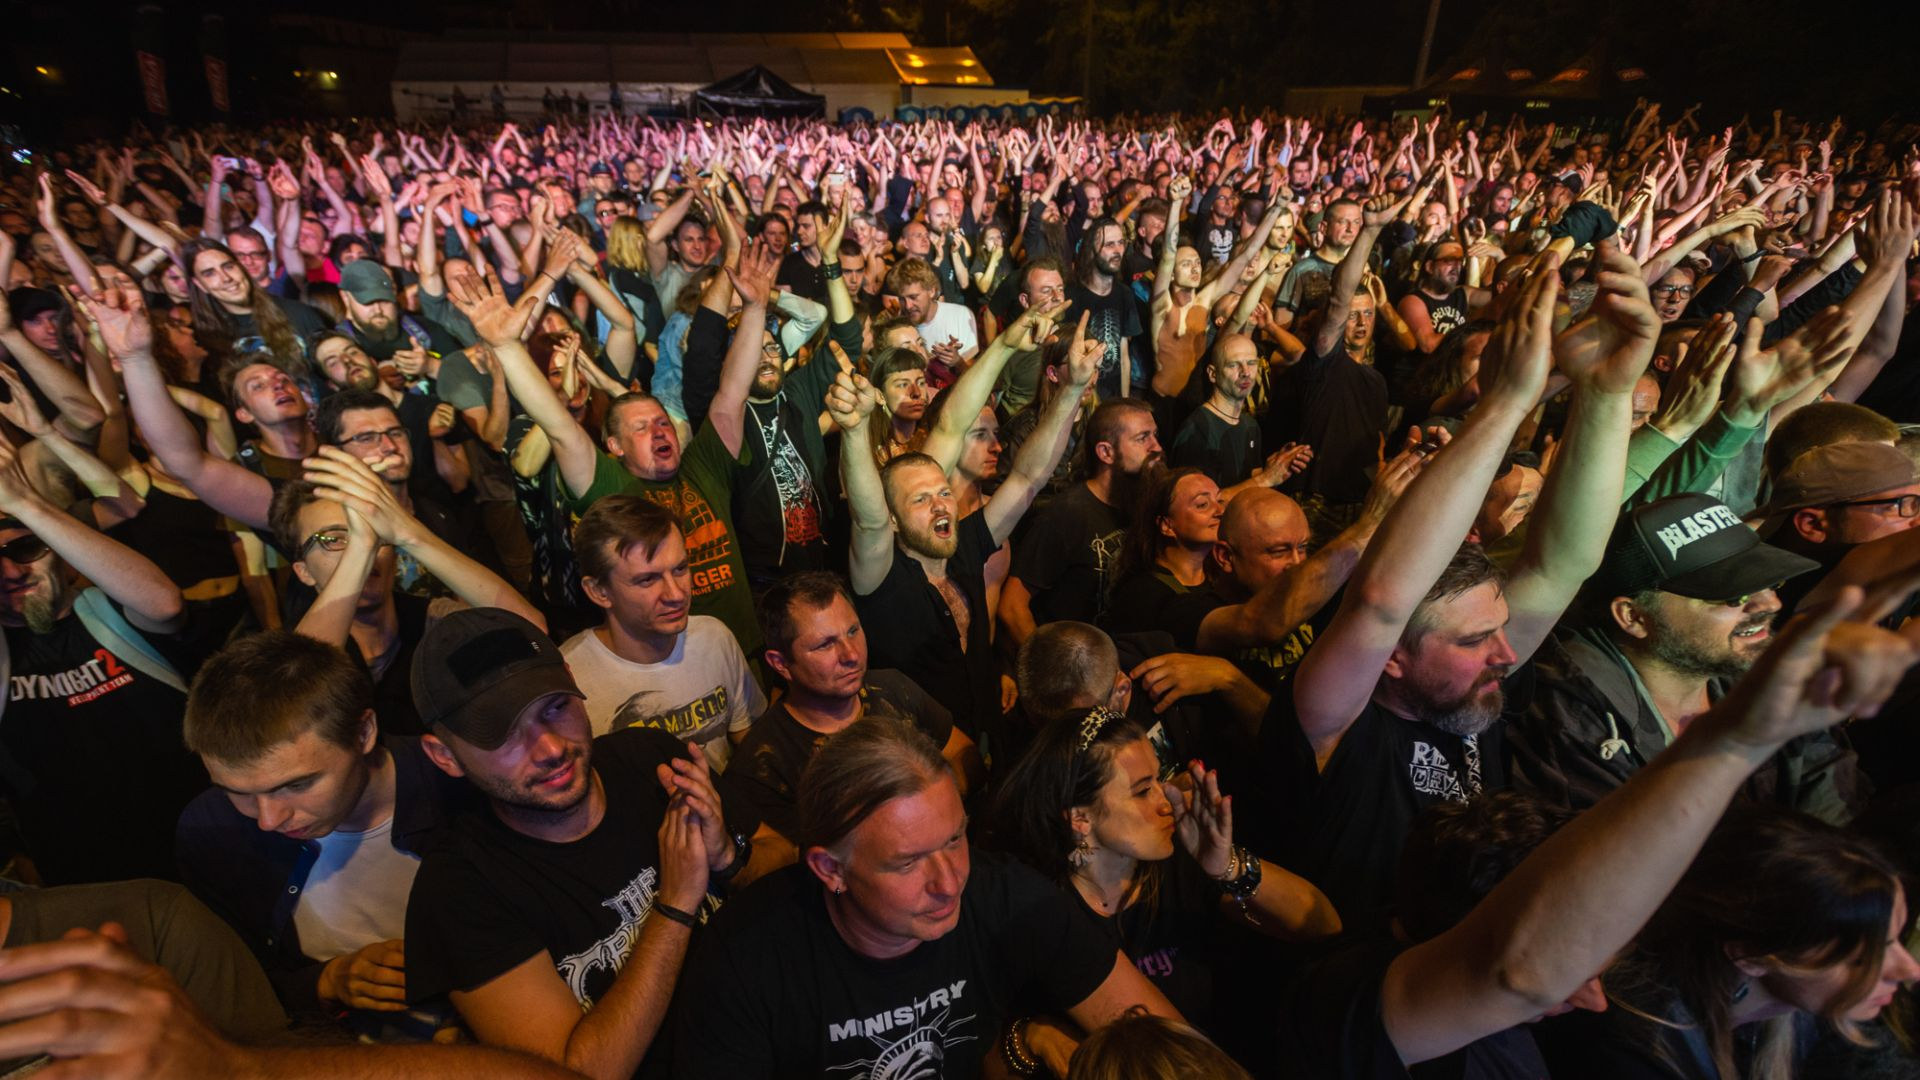 The photo shows the audiences at East of Culture - Different Sounds in front of a music stage. Na zdjęciu publiczność festiwalu Wschód Kultury - Inne Brzmienia pod sceną koncertową. The crowds are holding their arms up in the air and are screaming enthusiastically